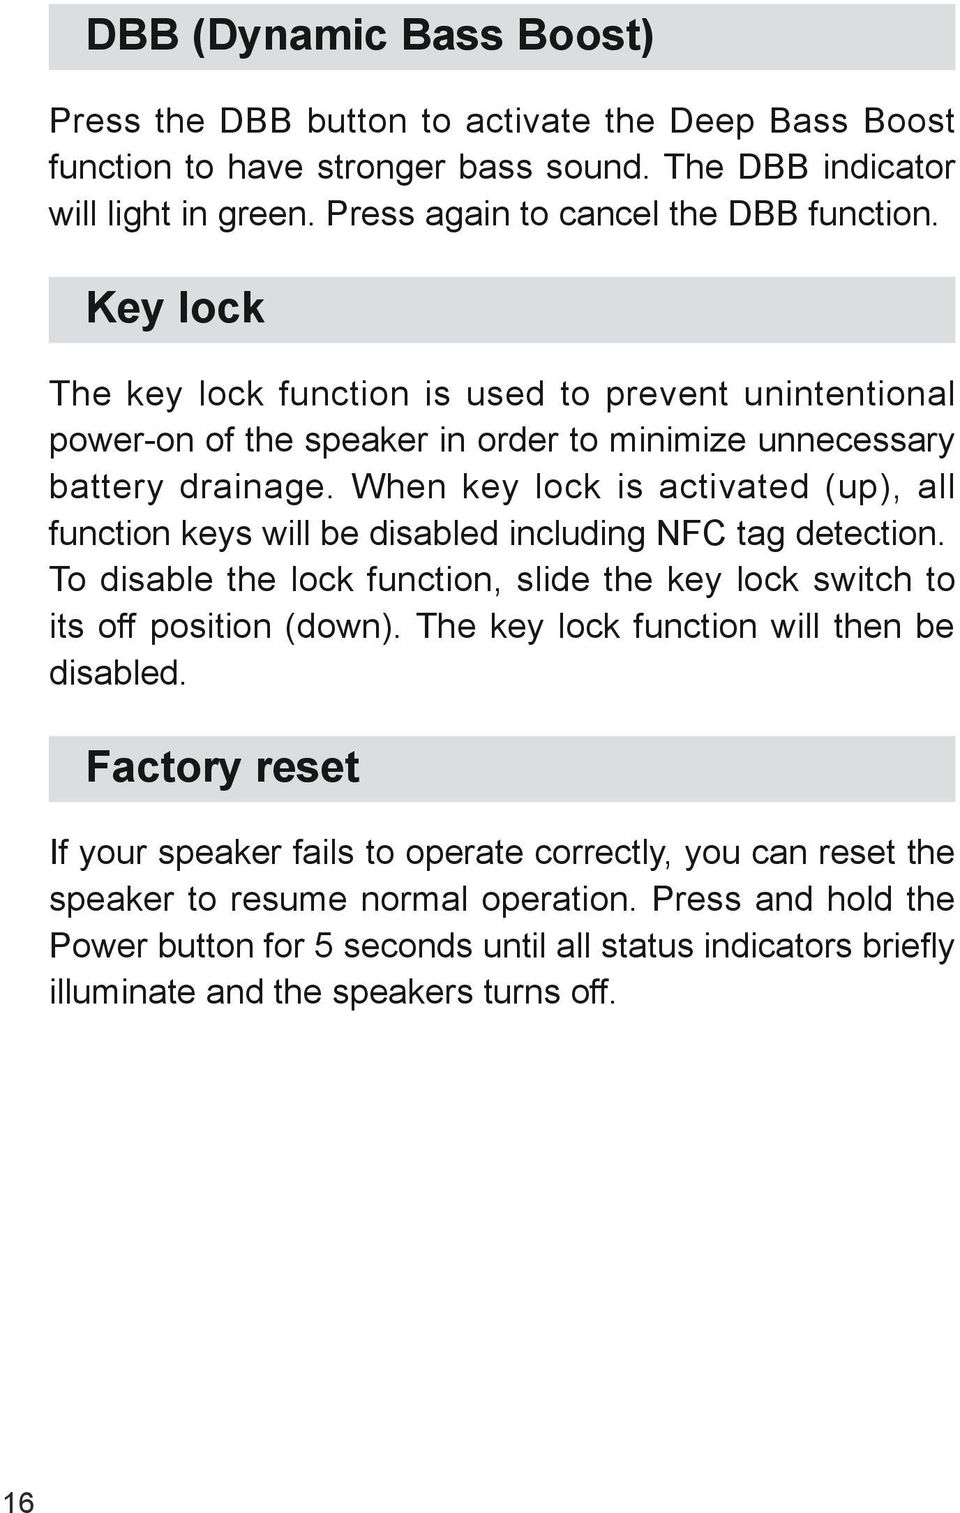 When key lock is activated (up), all function keys will be disabled including NFC tag detection. To disable the lock function, slide the key lock switch to its off position (down).